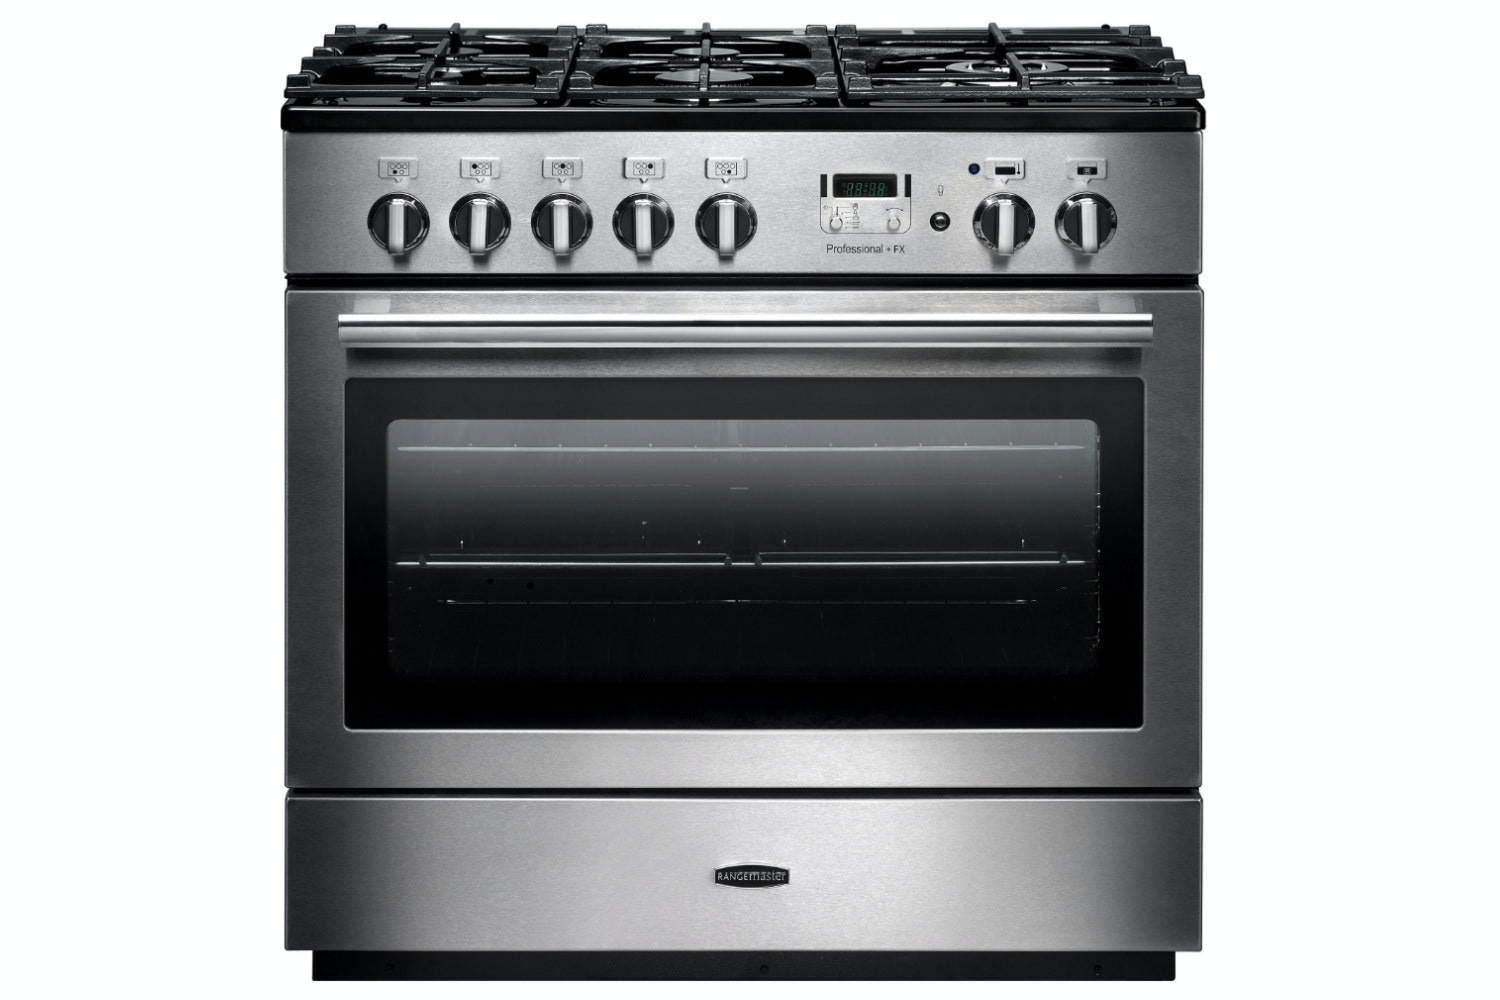 Rangemaster Pro Plus FX 90cm Dual Fuel Range Cooker | PROP90FXDFFSS/C | Stainless Steel